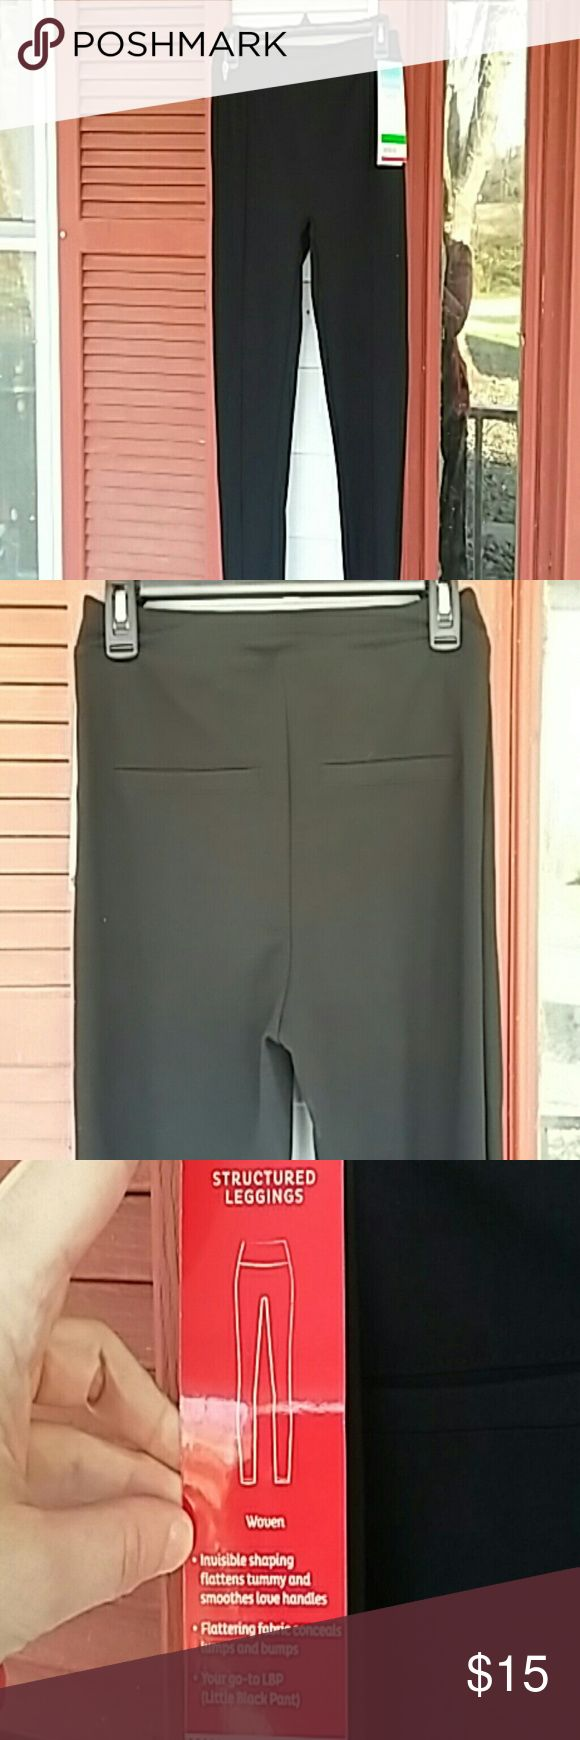 Assets by Spanx leggings. Black,new with tags leggings from Spanx. Polyester blend. SPANX Pants Leggings